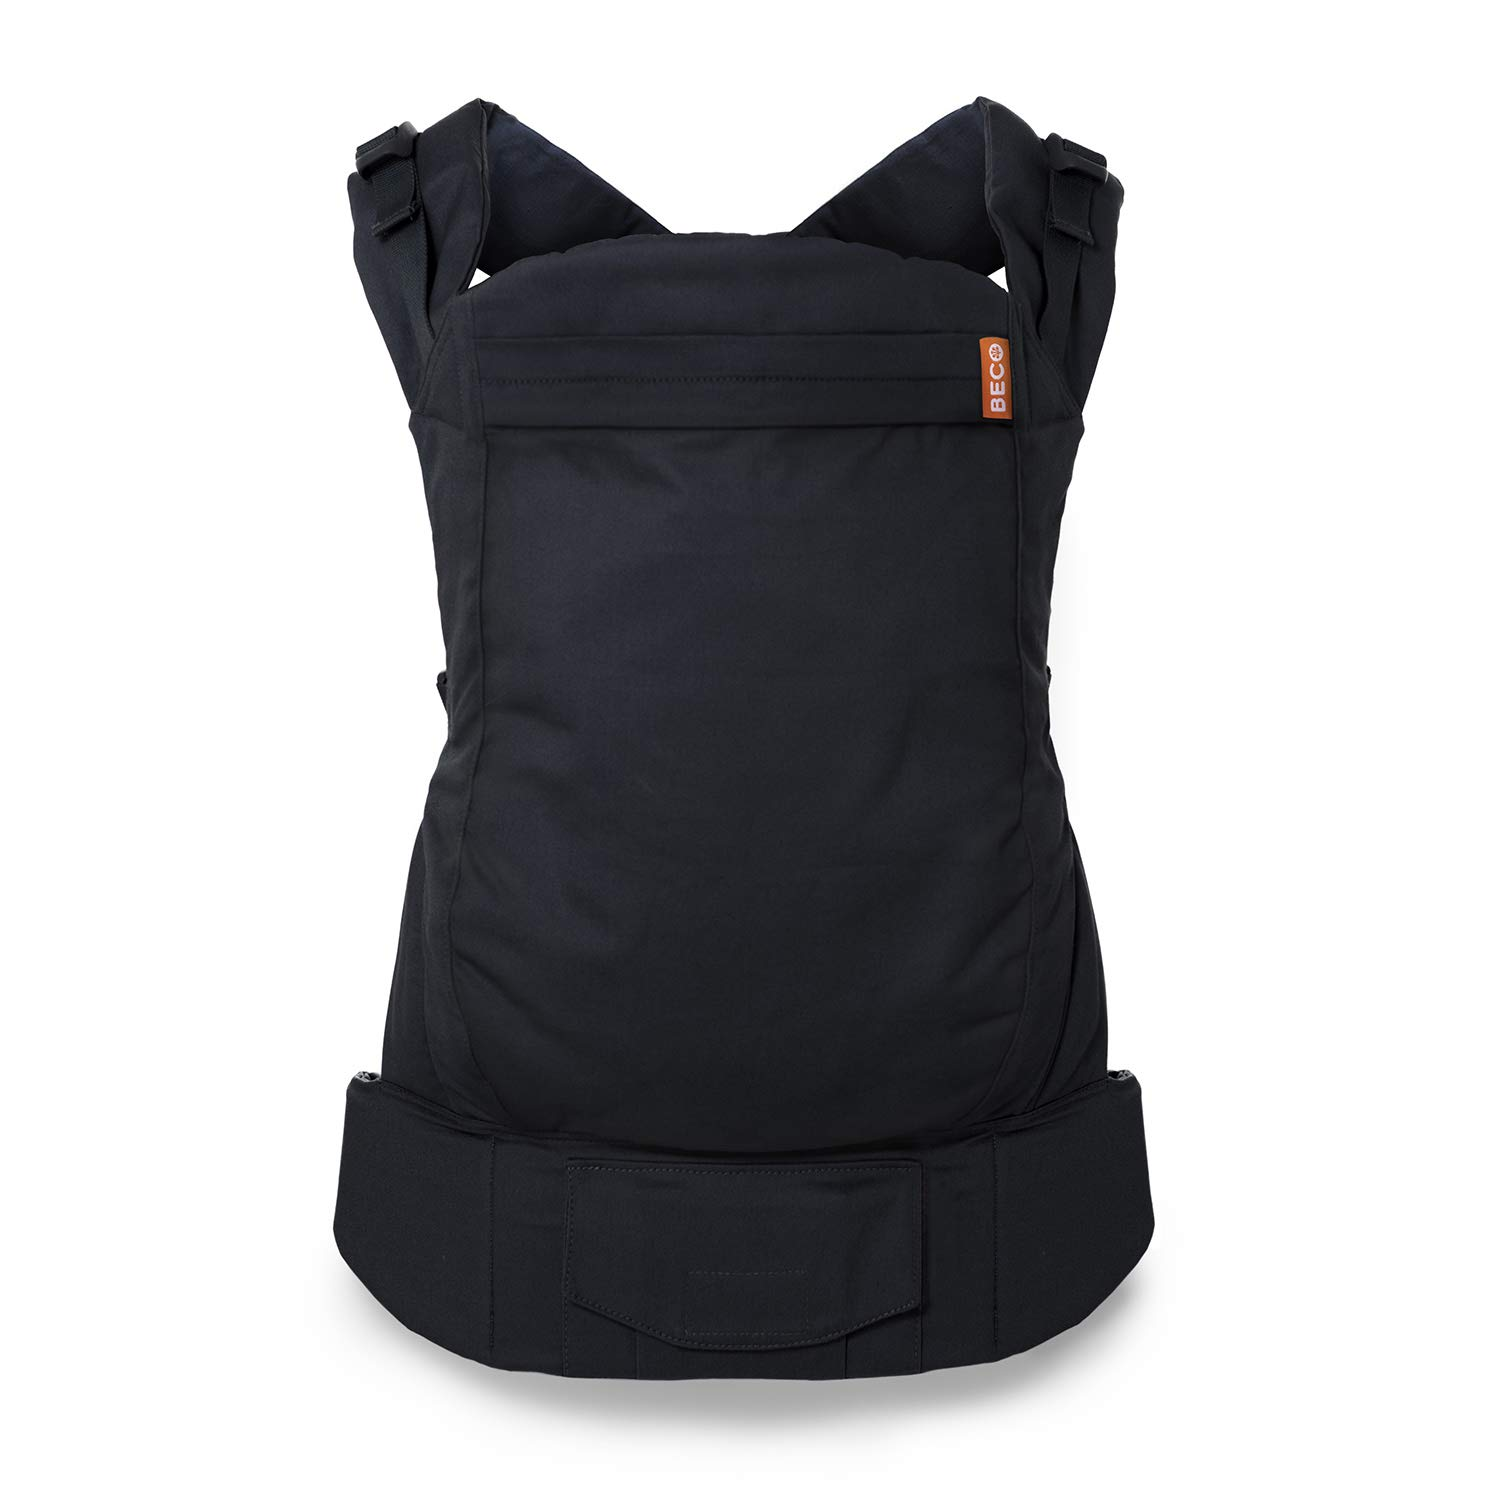 Beco Toddler Baby Carrier Metro Black